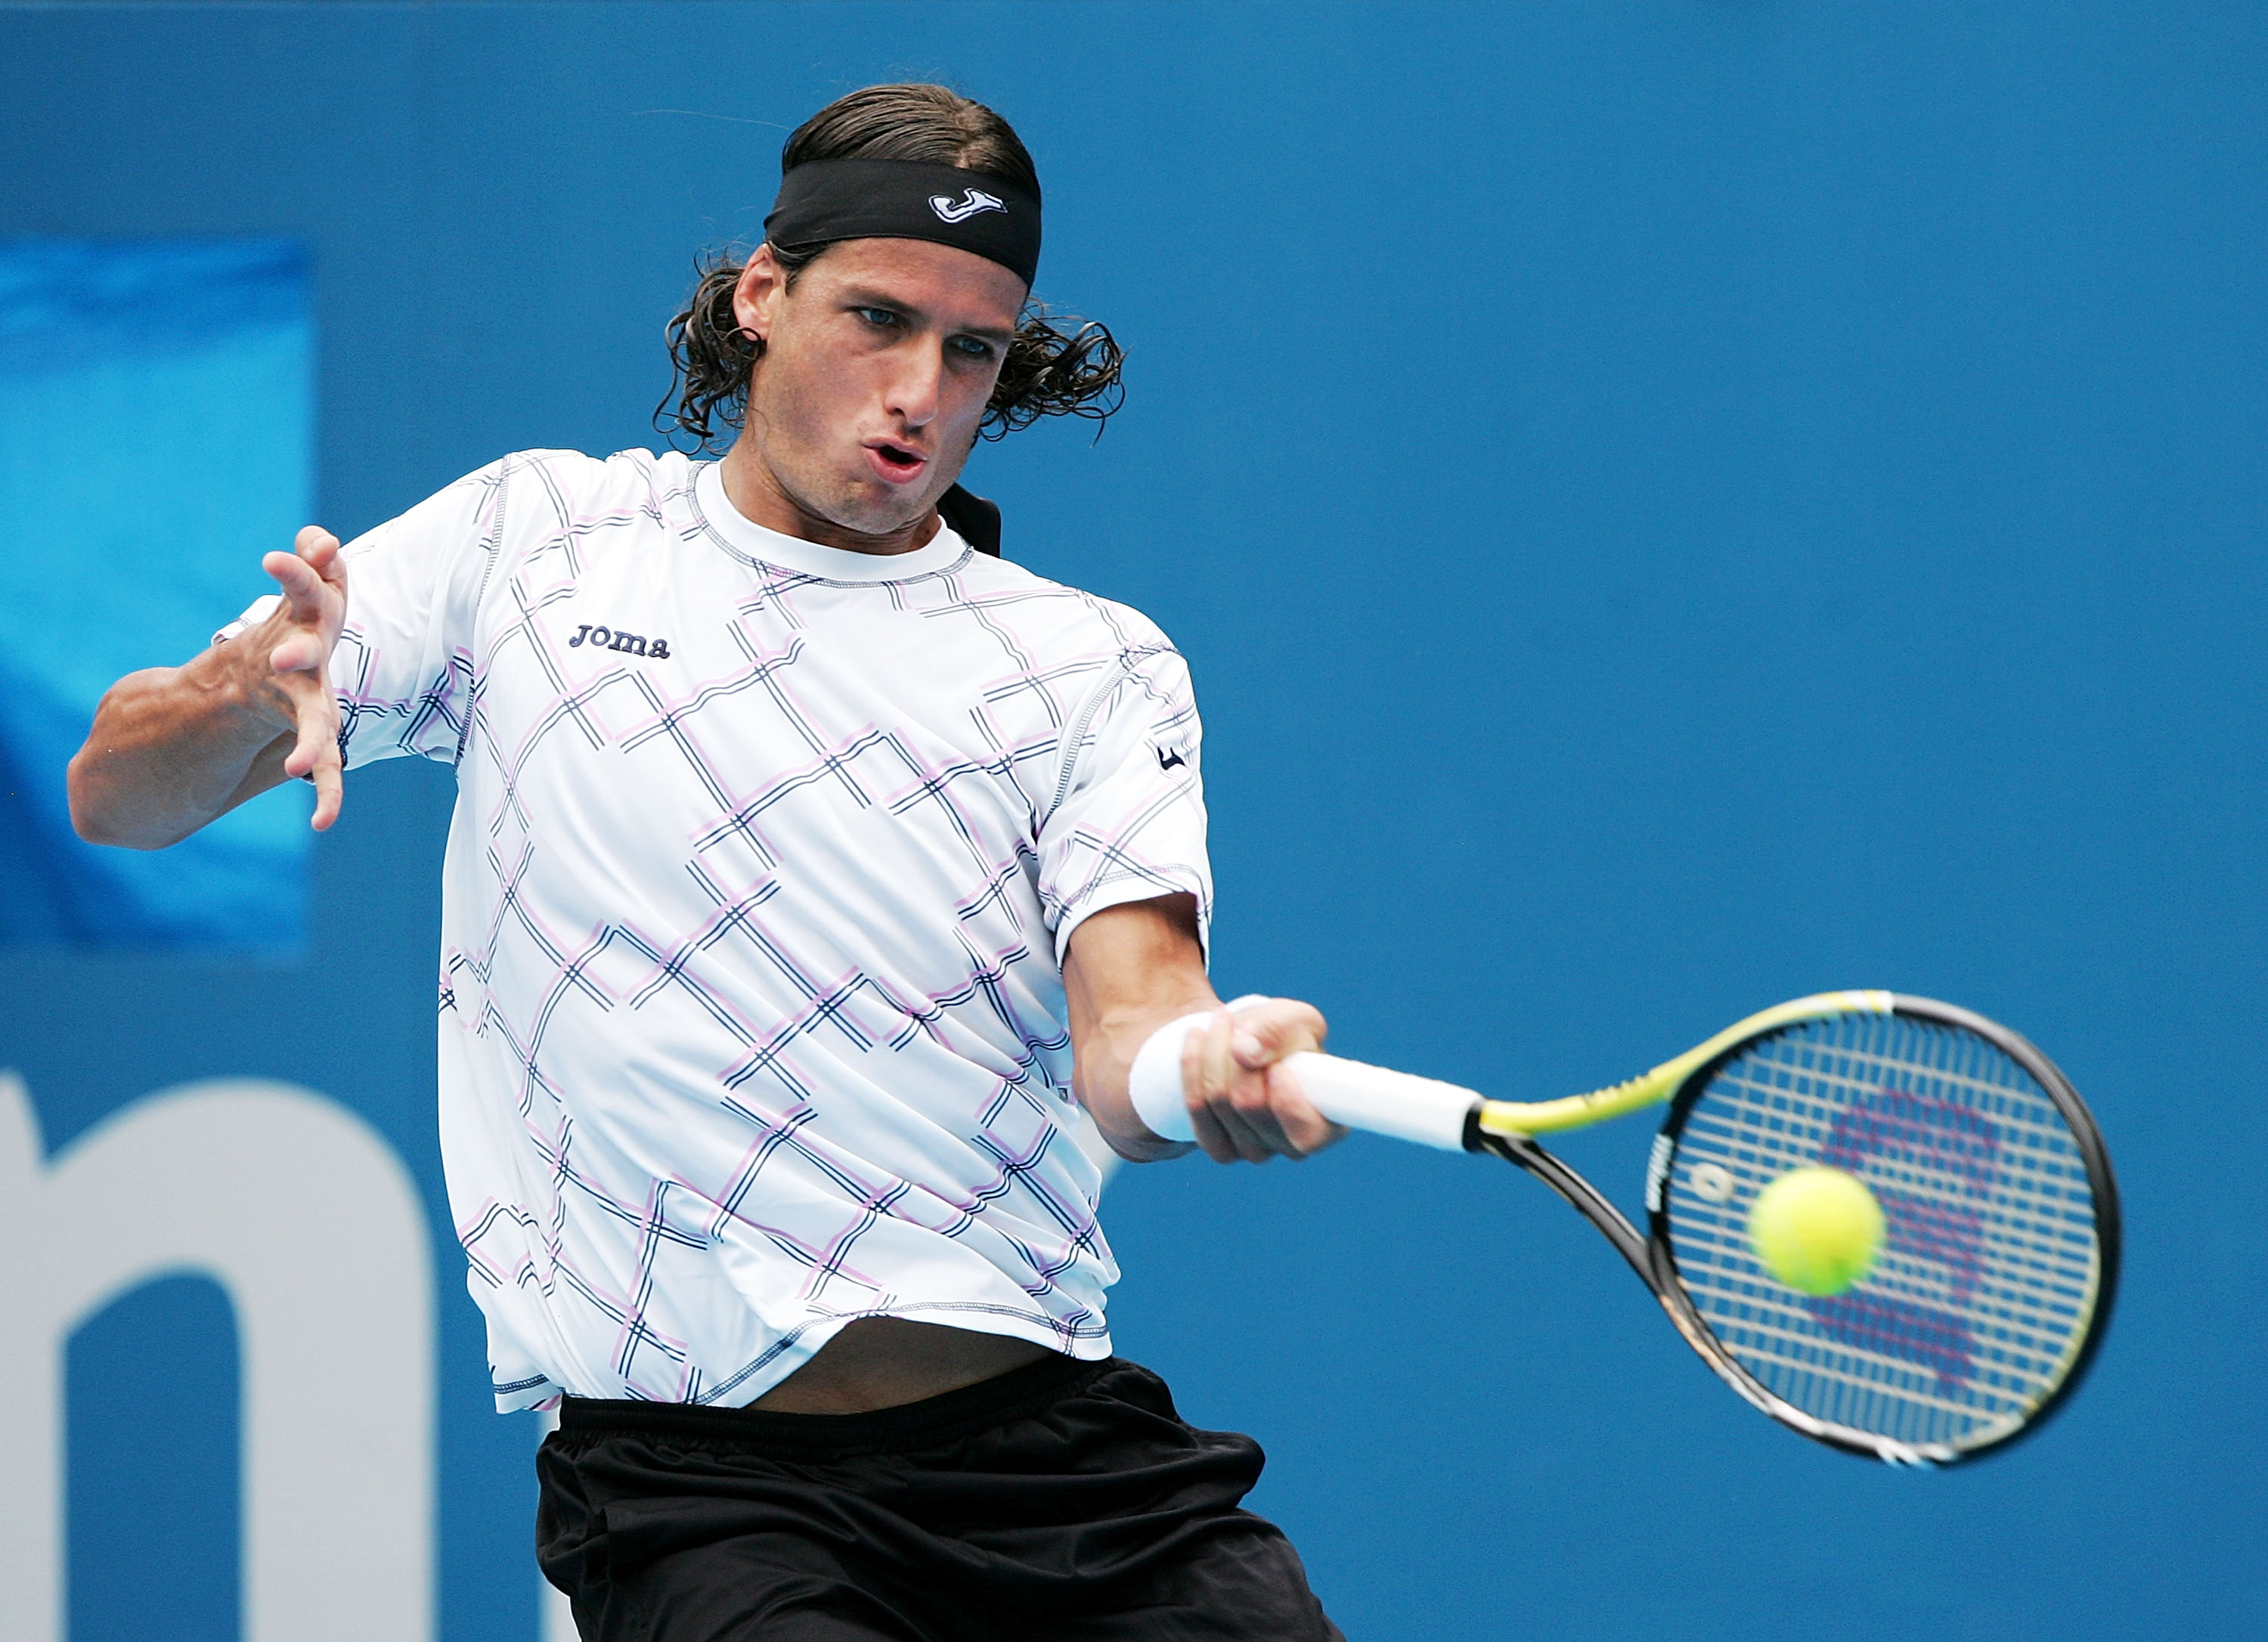 SYDNEY, AUSTRALIA - JANUARY 10:  Feliciano Lopez of Spain plays a forehand in his/her match against Juan Martin Del Potro of Argentina during day two of the 2011 Medibank International at Sydney Olympic Park Tennis Centre on January 10, 2011 in Sydney, Au